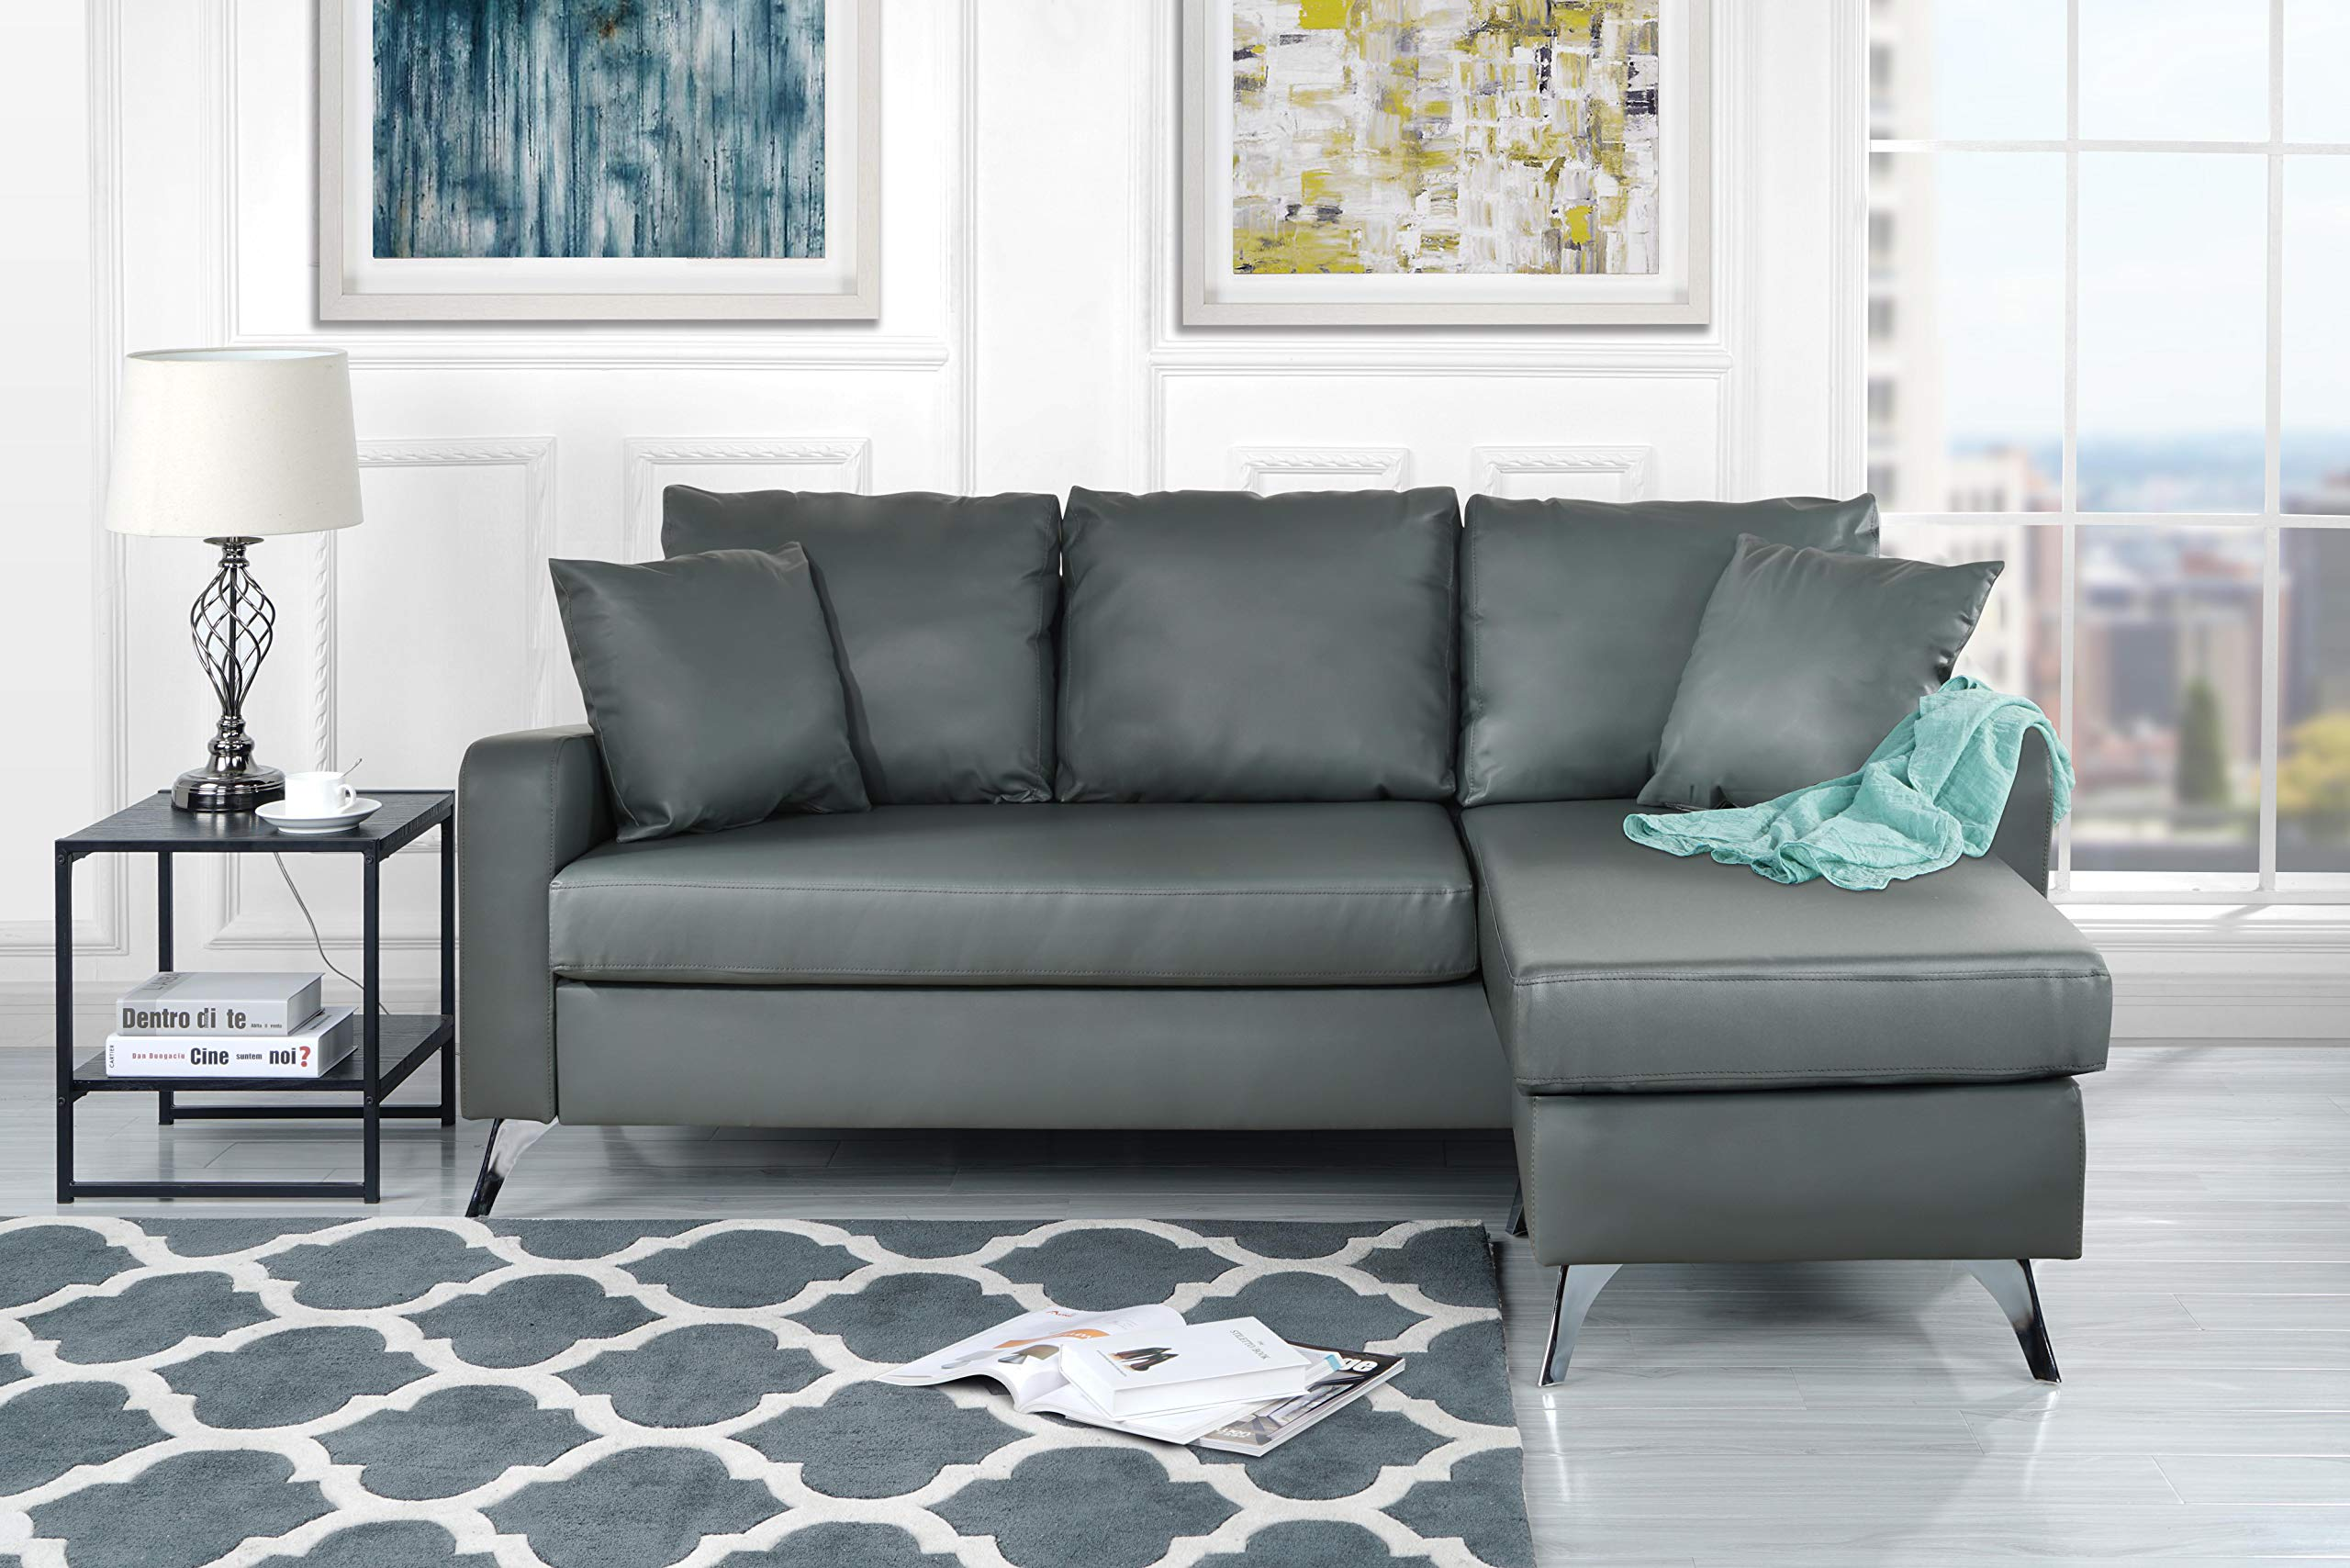 "Divano Roma Furniture Bonded Sectional, Light Grey - Bonded Leather small space reversible chaise sectional sofa Durable bonded leather upholstery with hardwood frame and chrome finish metal legs Measures: 76""W x 54""D x 34""H inches - sofas-couches, living-room-furniture, living-room - 81s1SkcmJYL -"